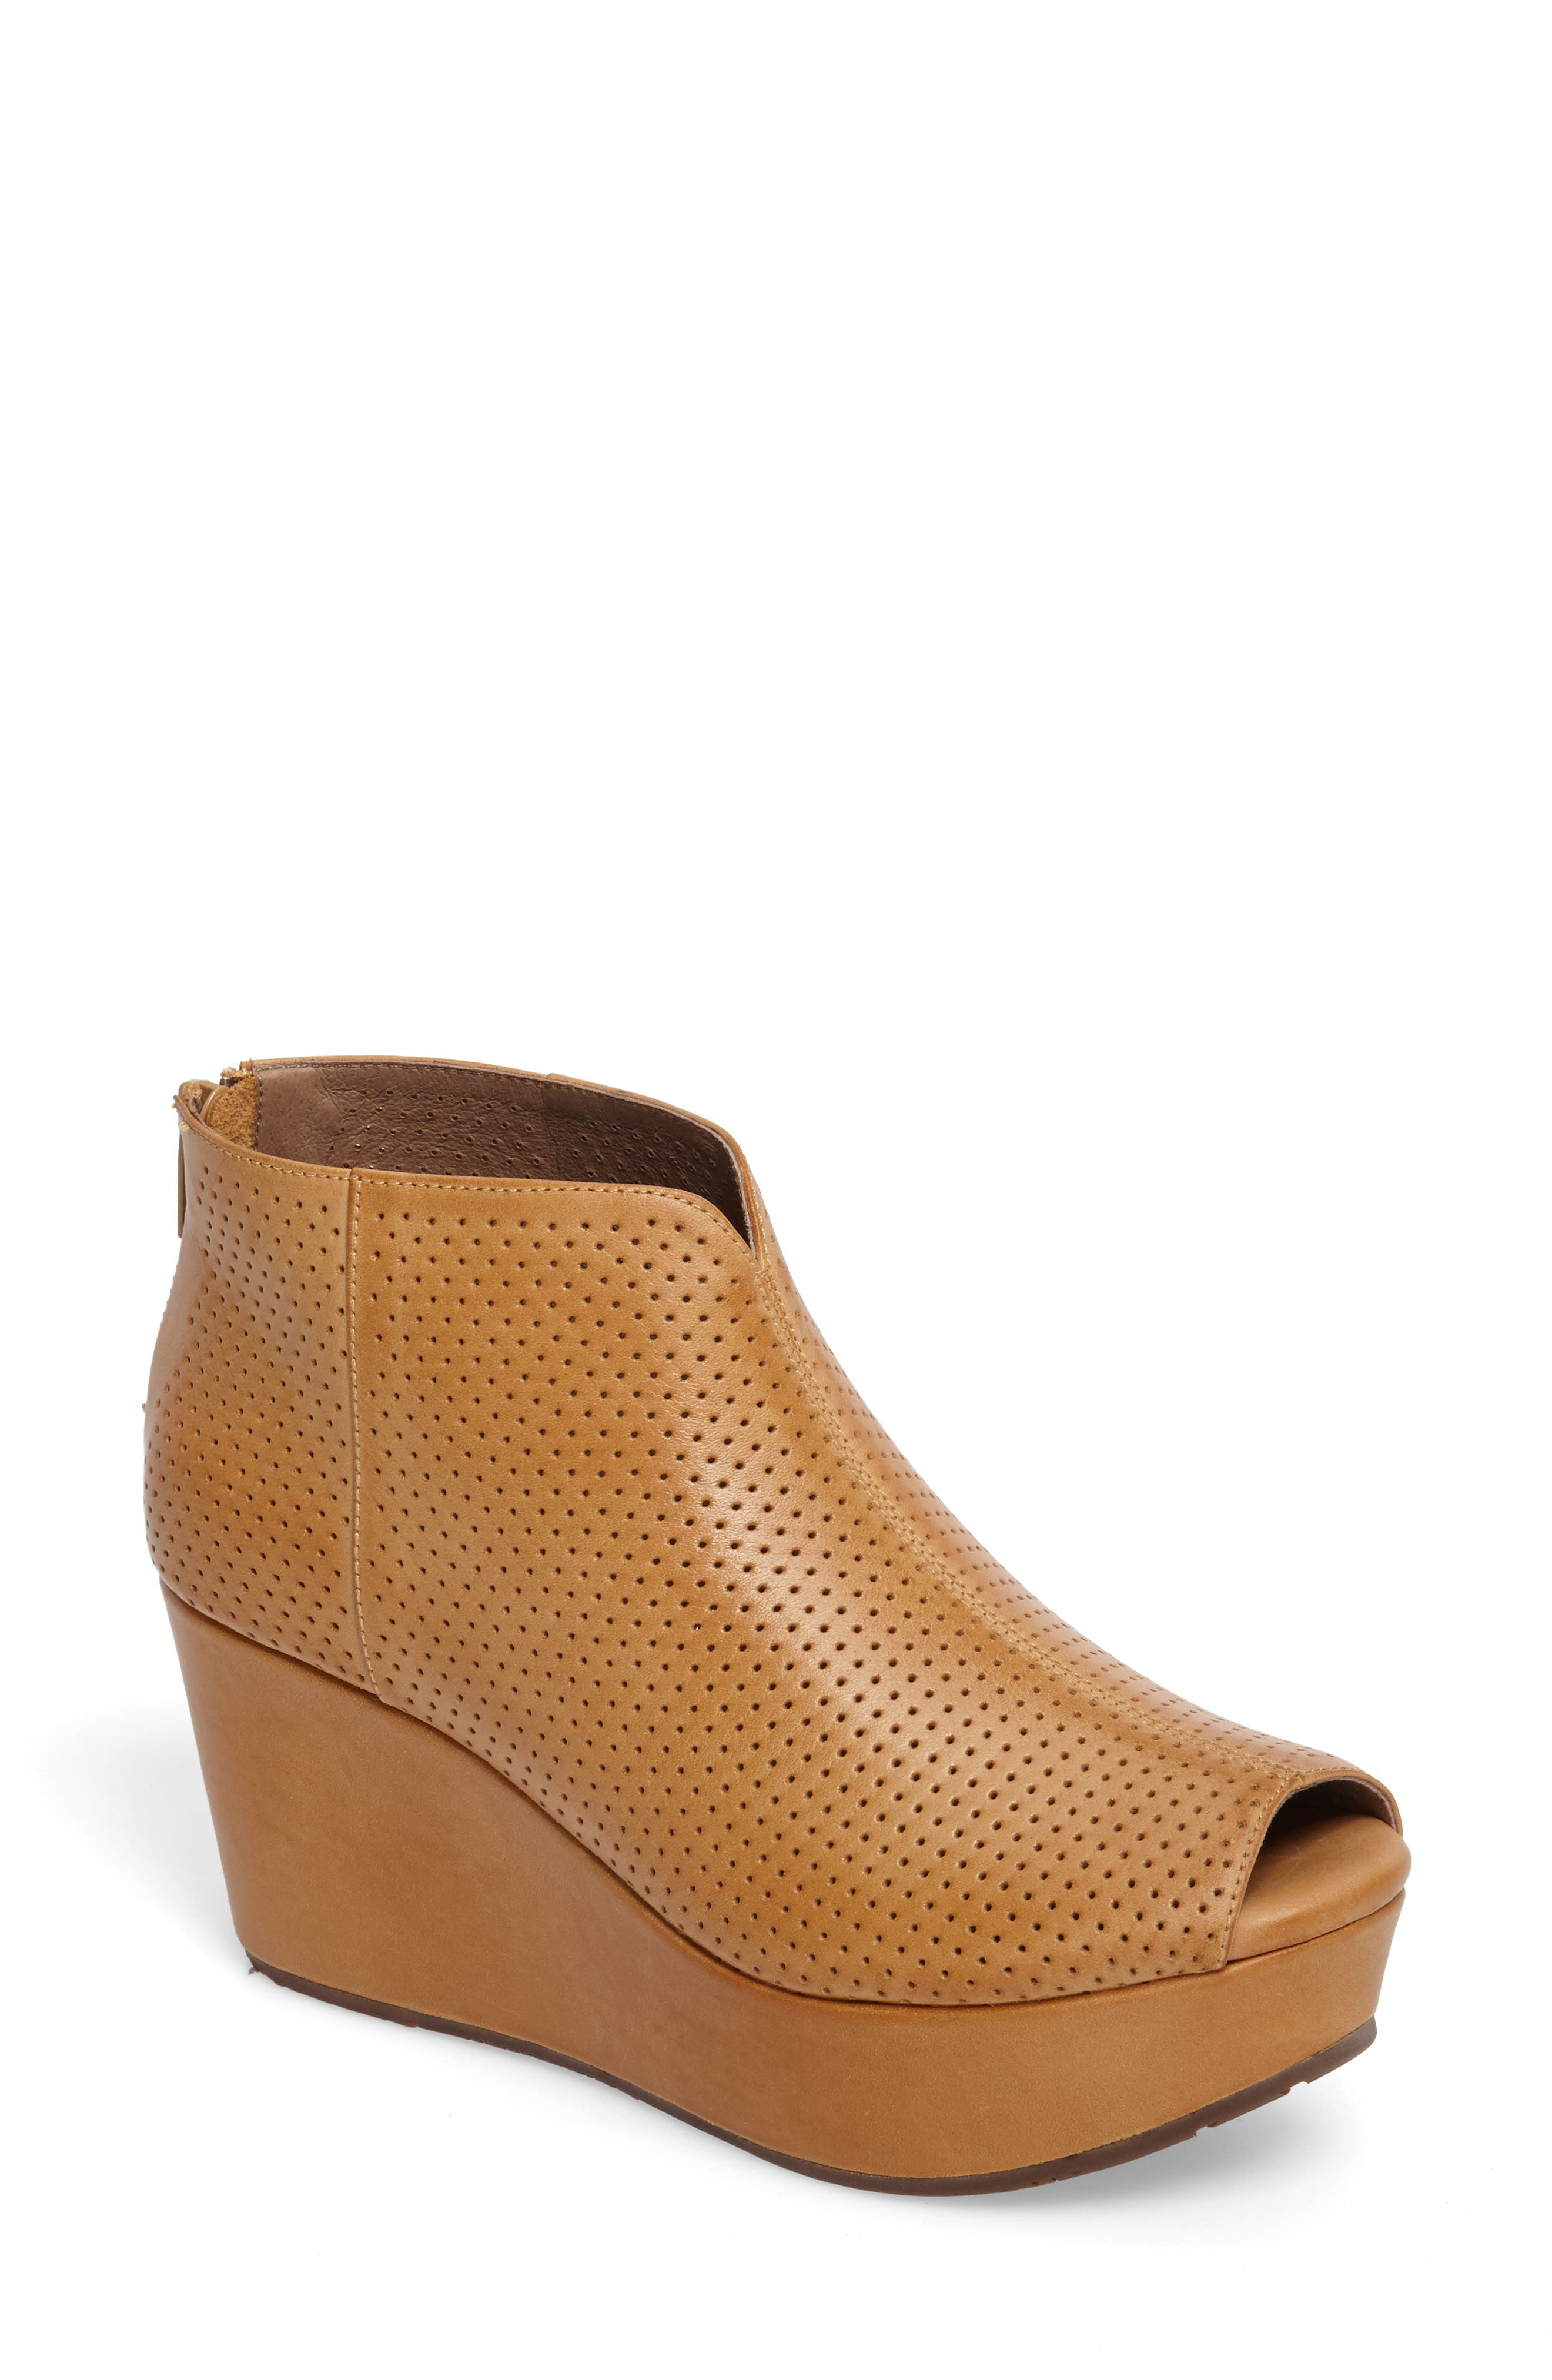 Walee Peep Toe Platform Bootie,                         Main,                         color, Desert Leather